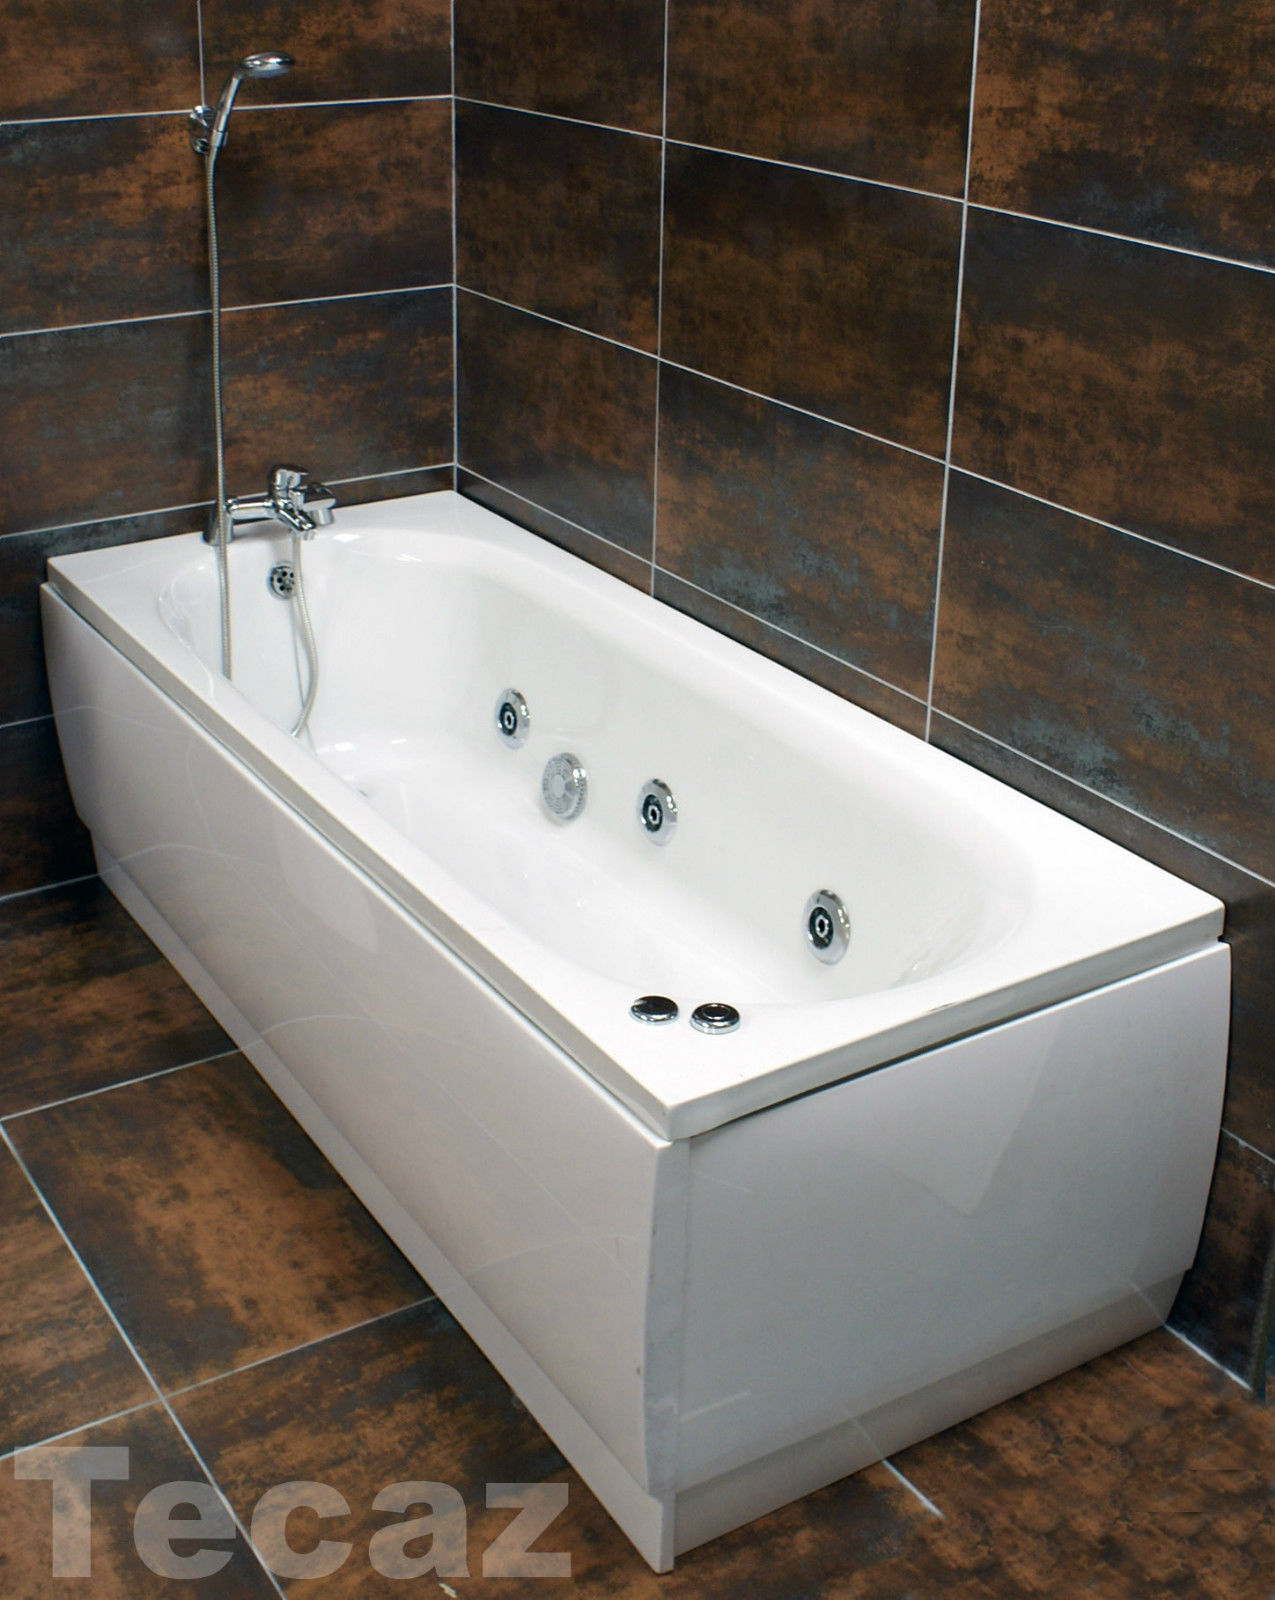 Montecarlo Whirlpool Bath With 6 Jet Jacuzzi Type Spa System 1700mm ...